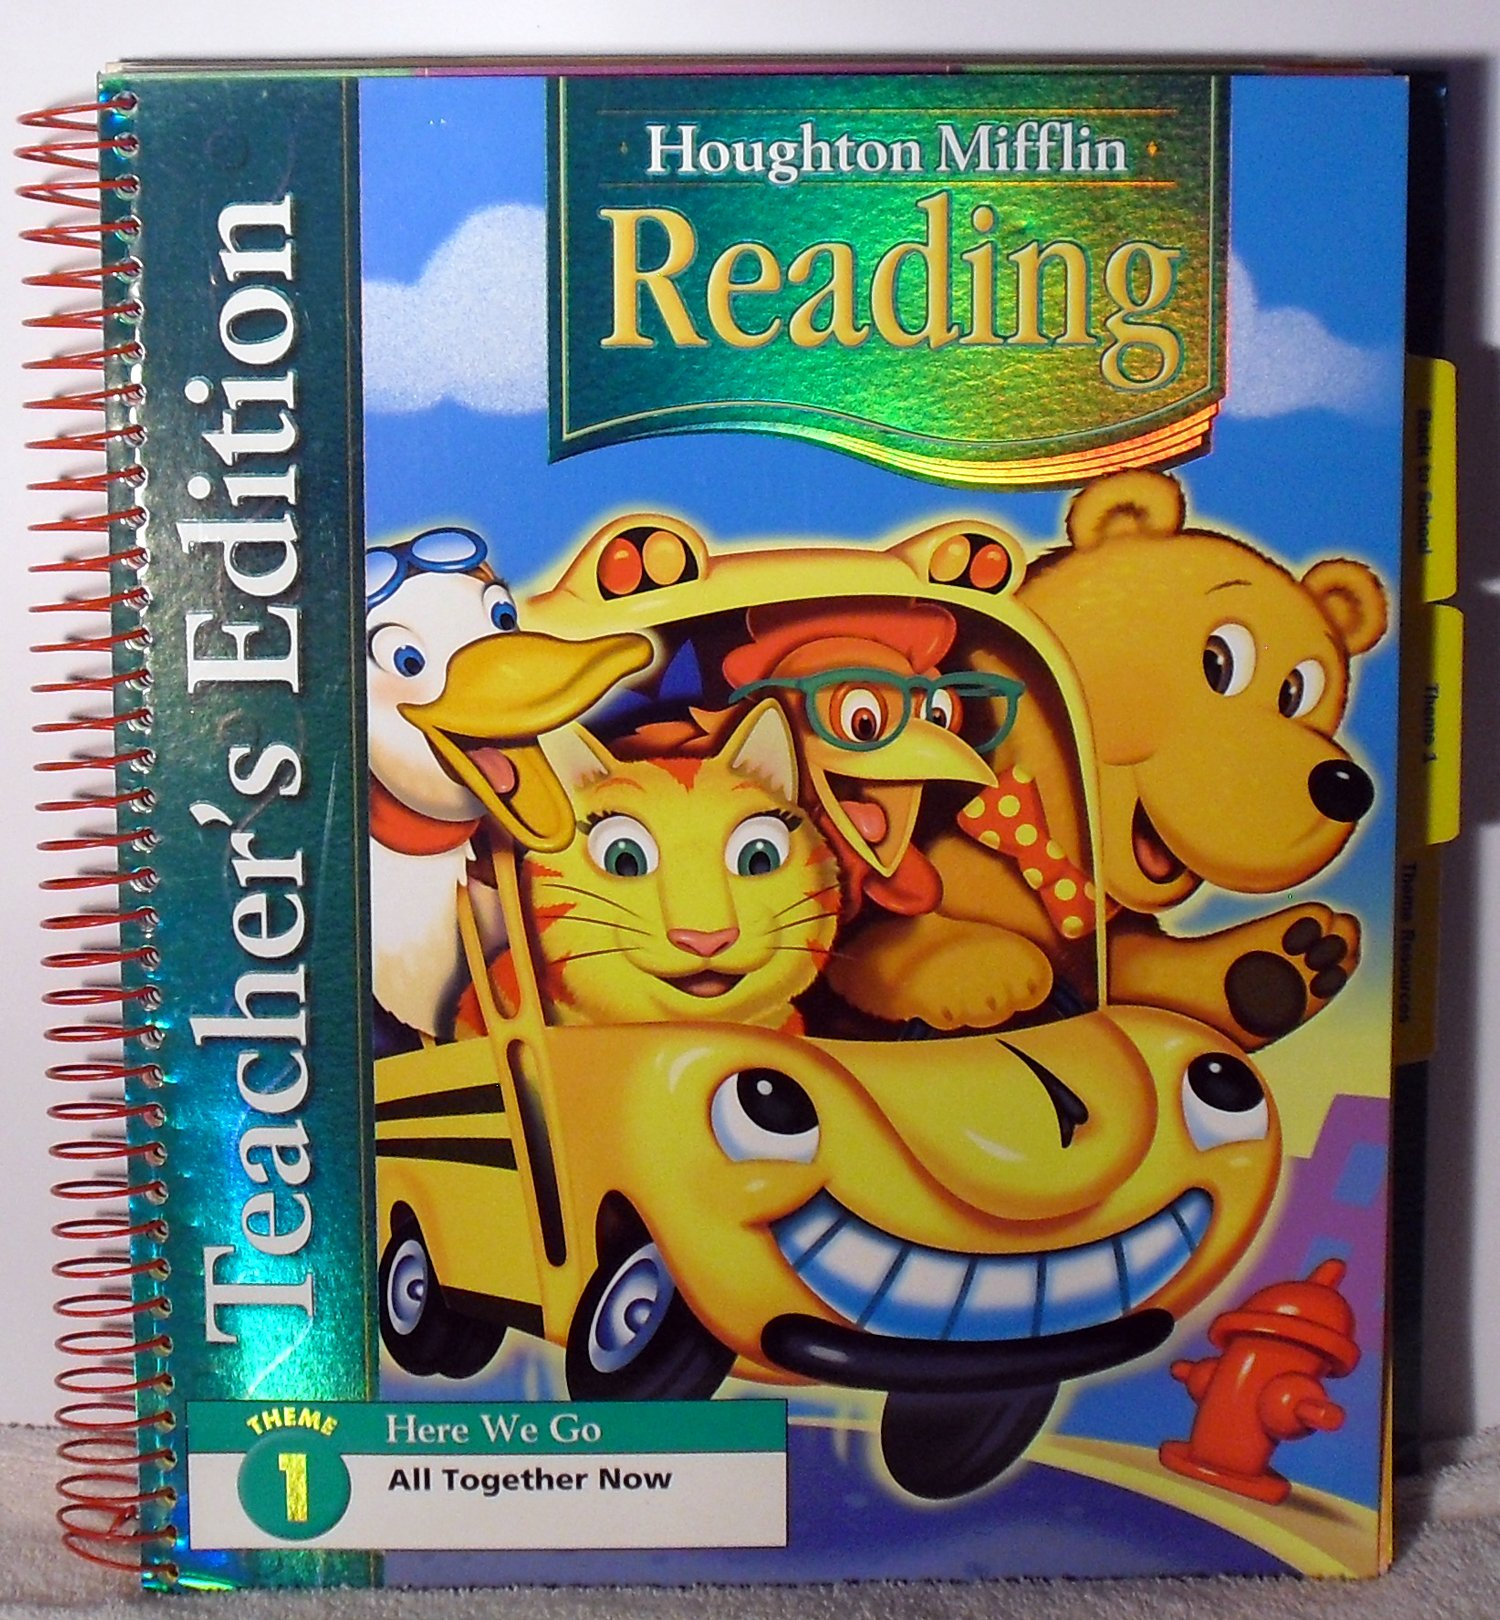 Houghton Mifflin Reading: Teacher's Edition Theme 1 Grade 1 2006 ebook